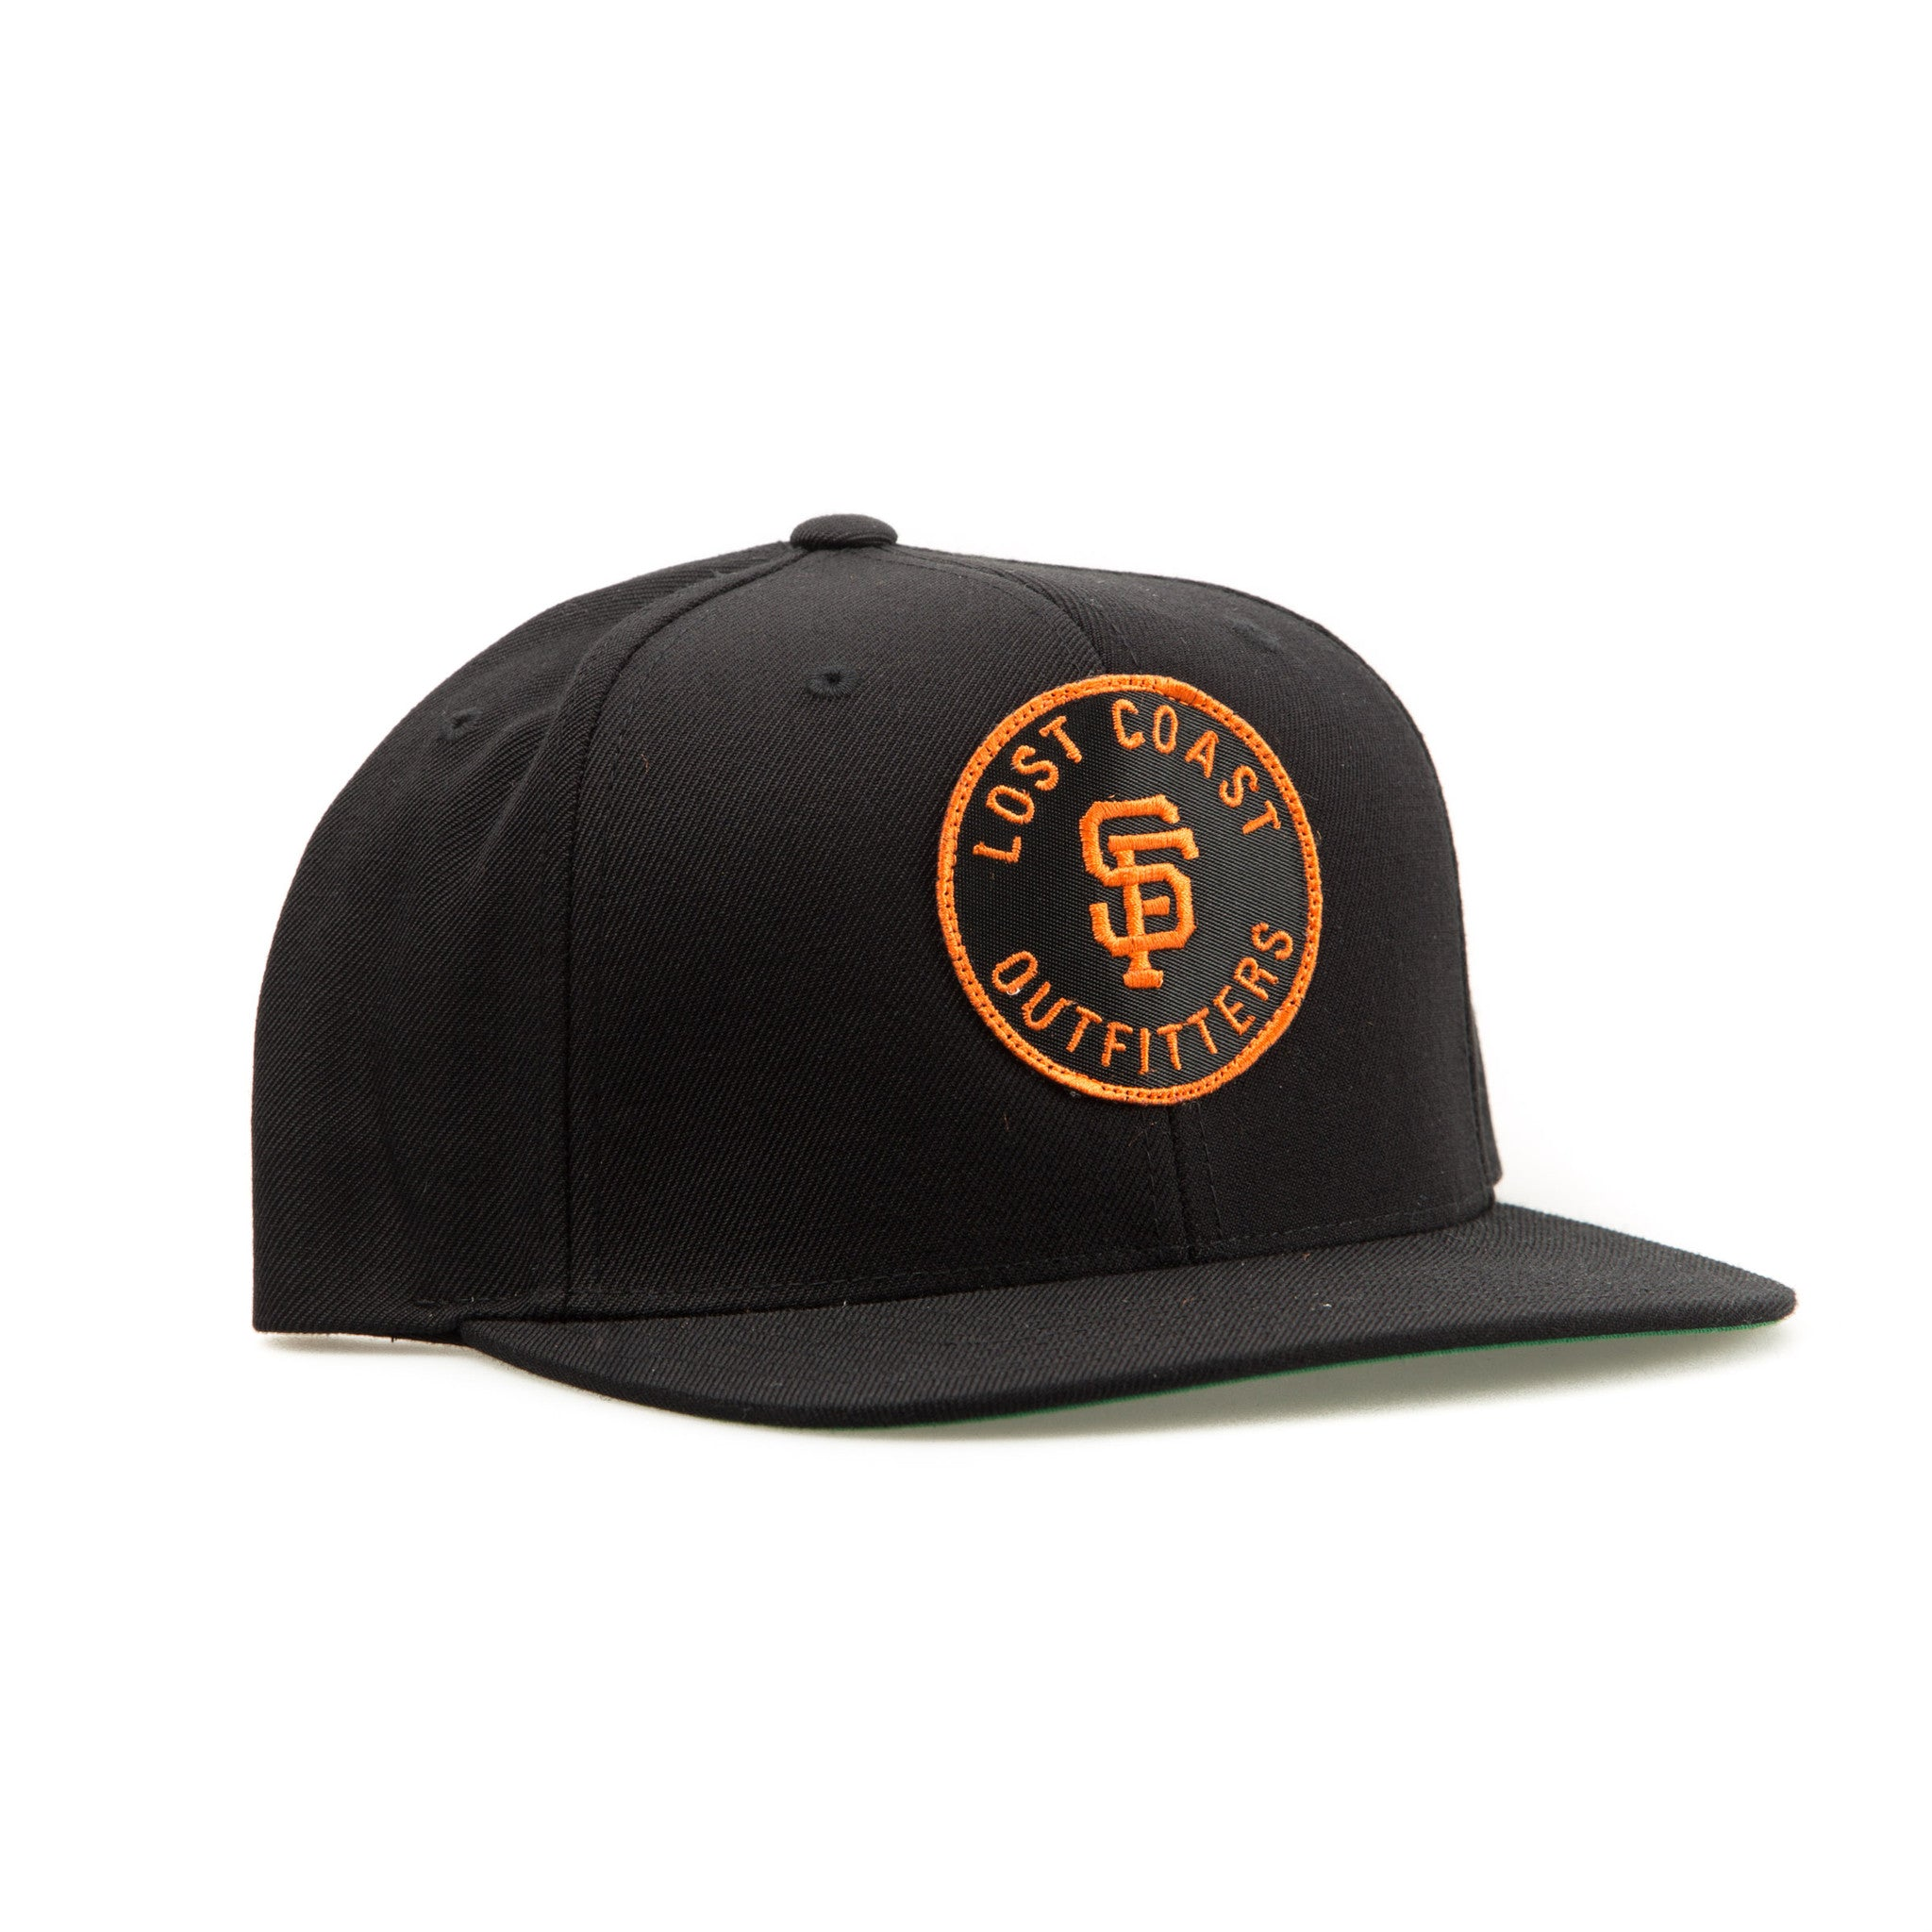 5ba2eb05703 Lost Coast Outfitters Hat - SF Edition - 1